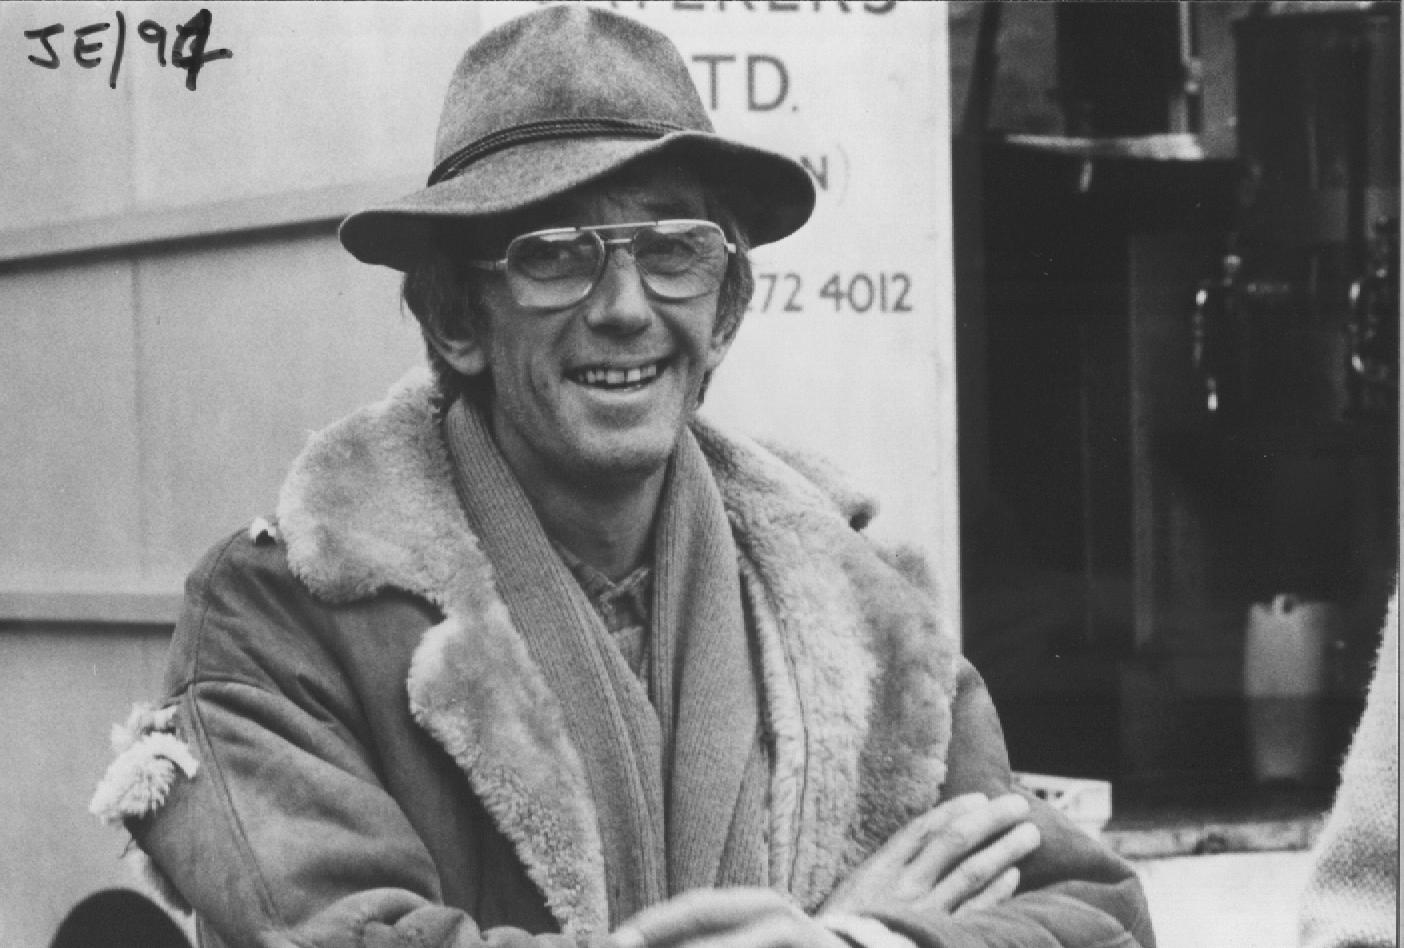 fred zinnemann and the cinema of resistance